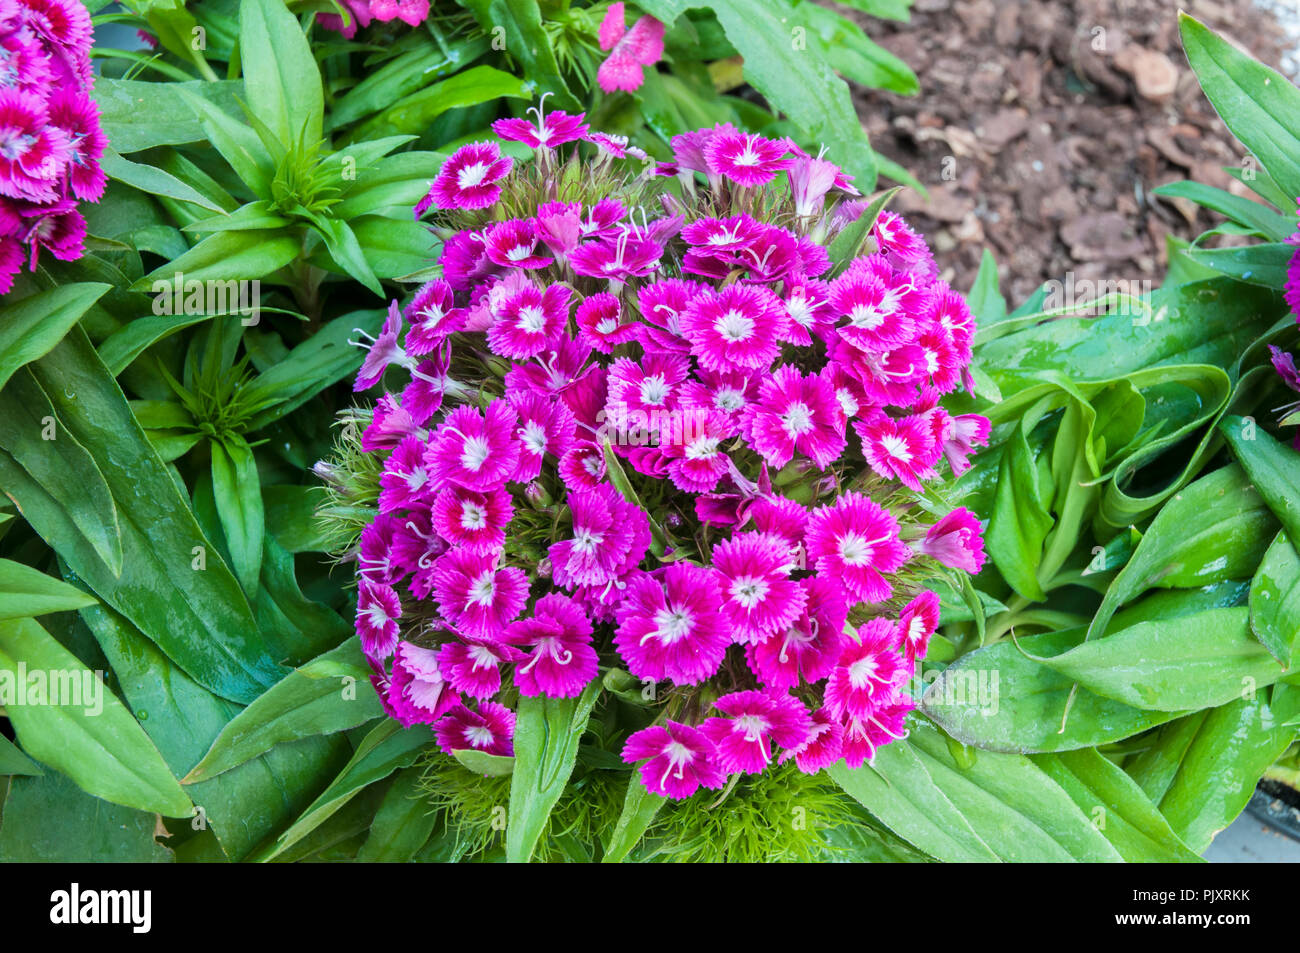 Dianthus Barbarini F1 Purple  with green leaf background. Common name Sweet William. - Stock Image